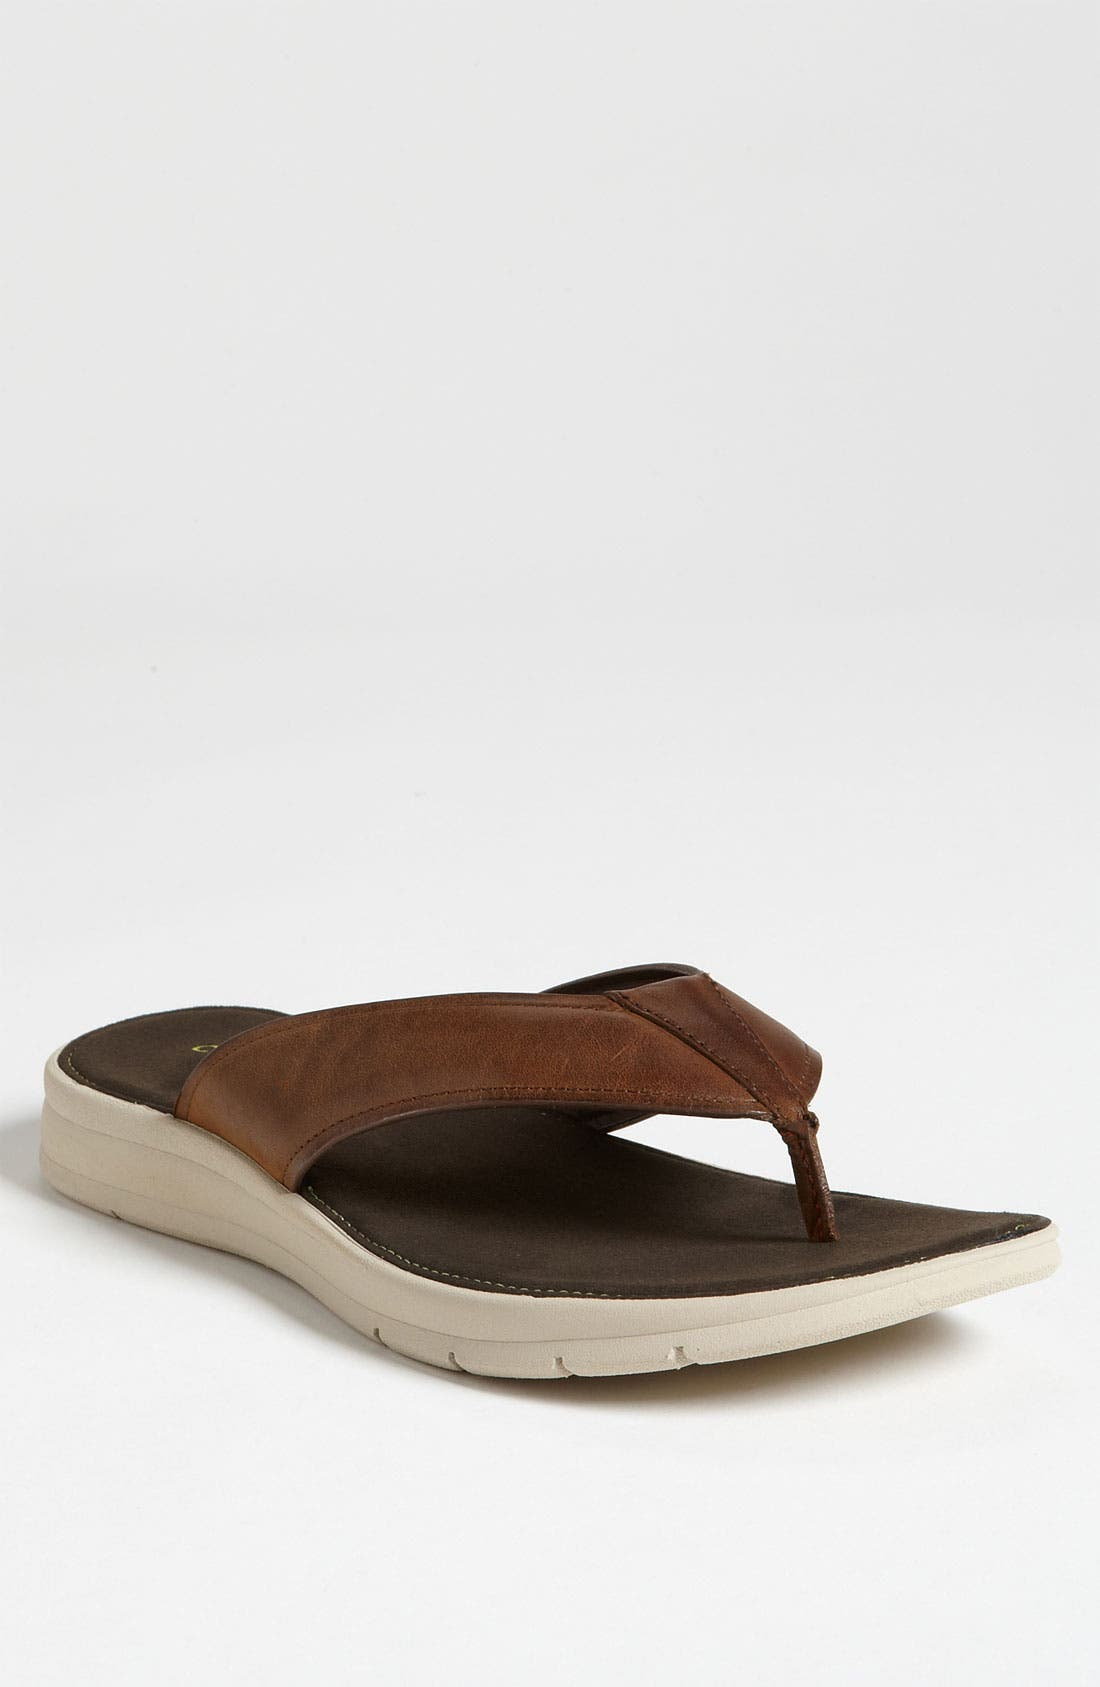 Main Image - Cole Haan 'Air Odell' Flip Flop